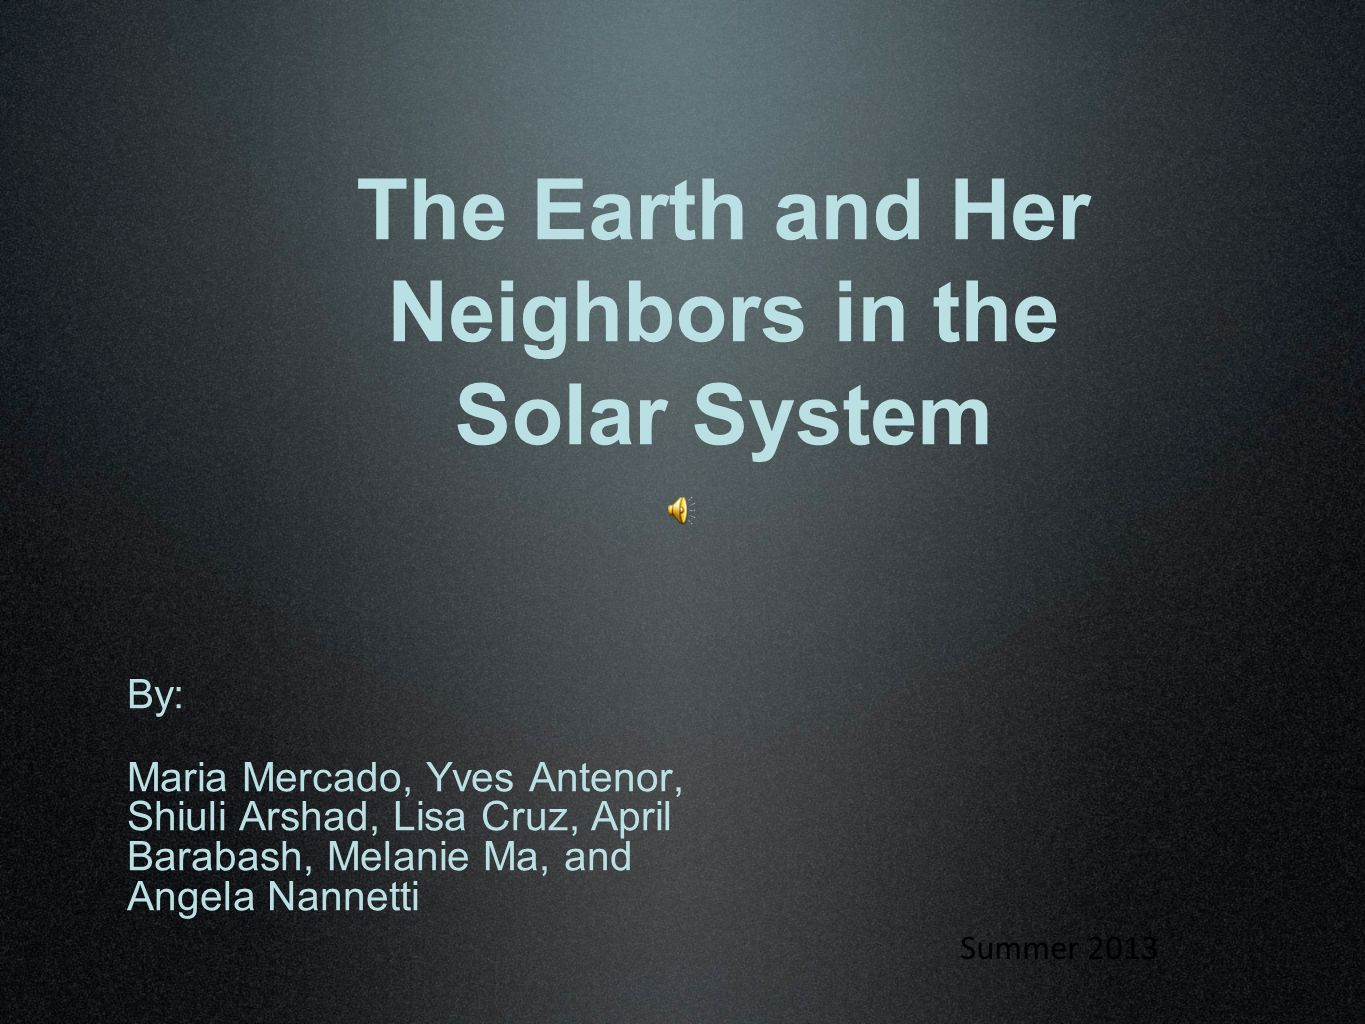 The Earth and Her Neighbors in the Solar System